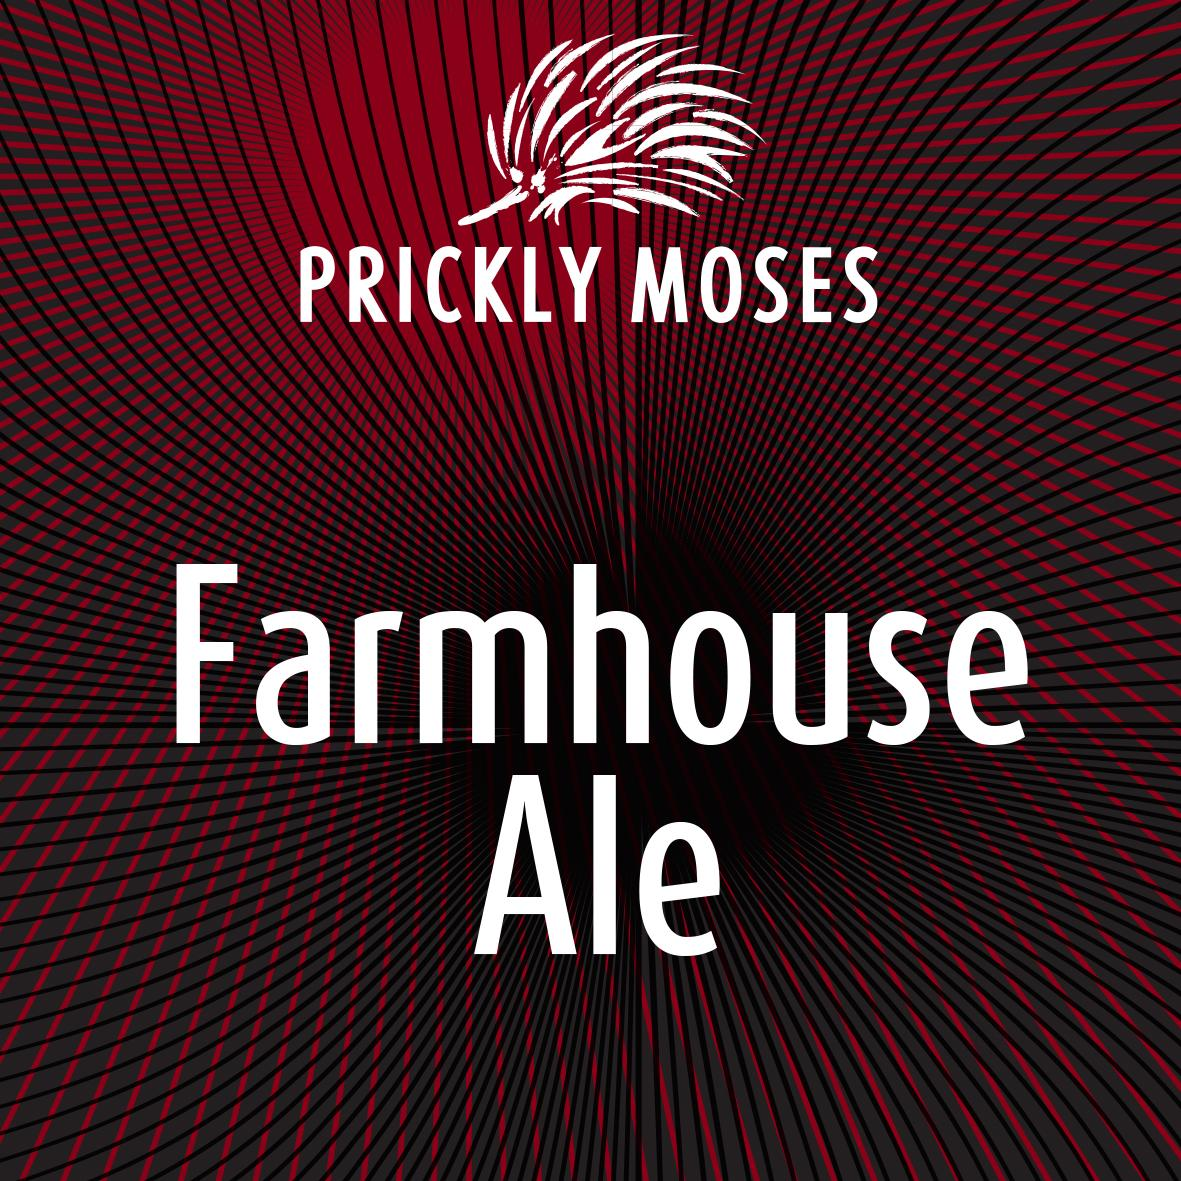 farmhouse ale prickly moses